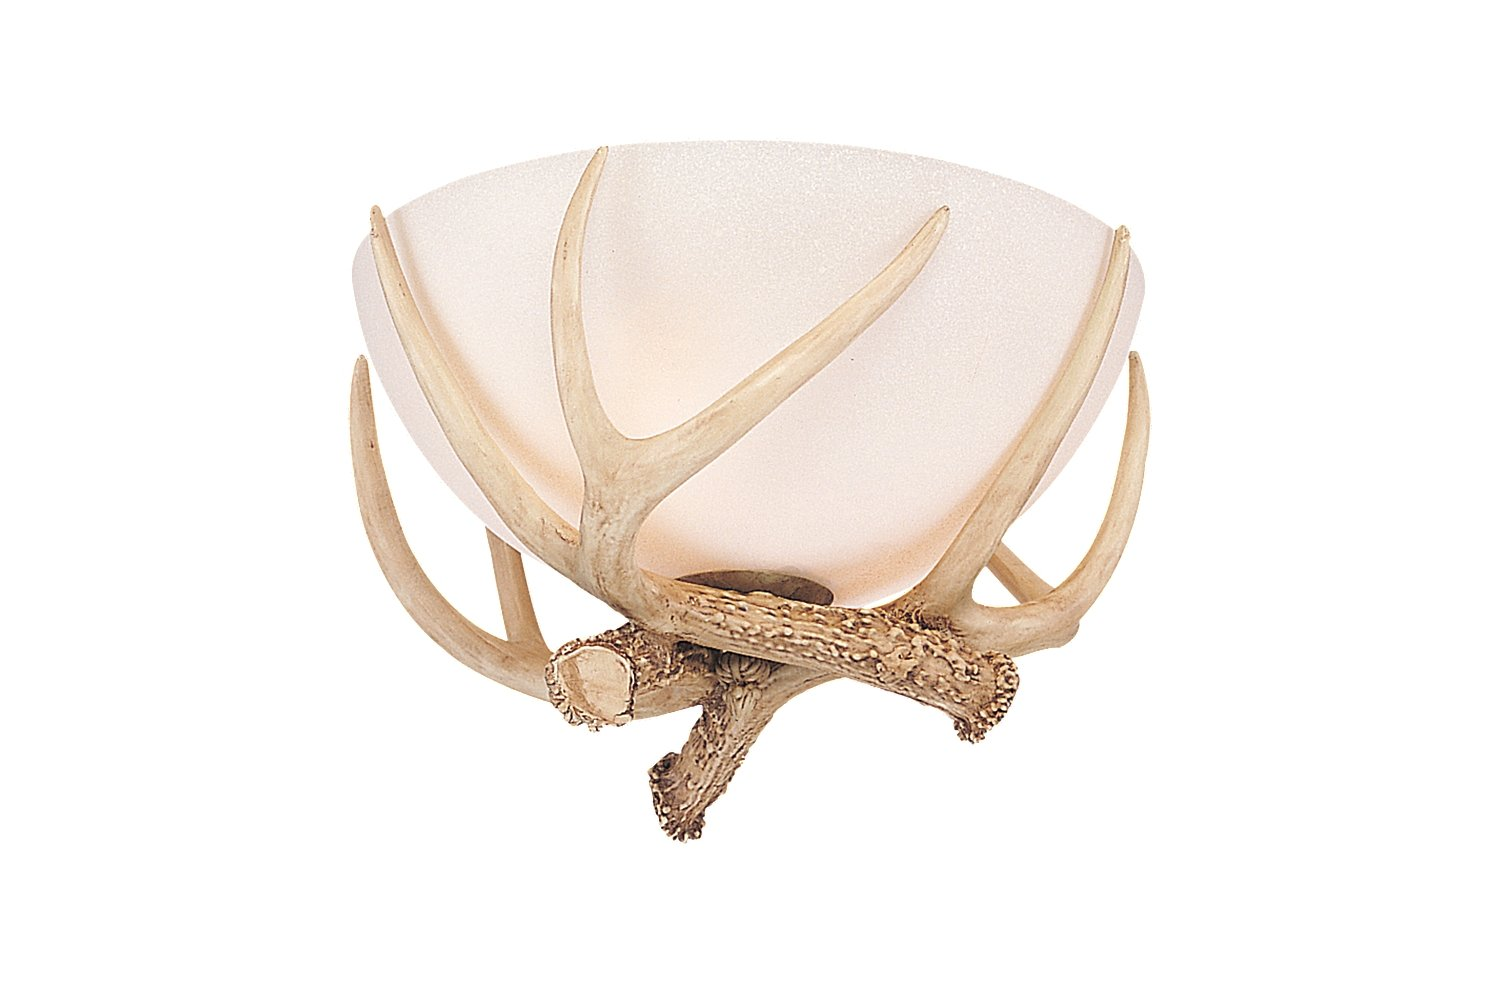 Monte carlo mc79 3 light antler bowl kit antique white scavo monte carlo mc79 3 light antler bowl kit antique white scavo amazon aloadofball Choice Image